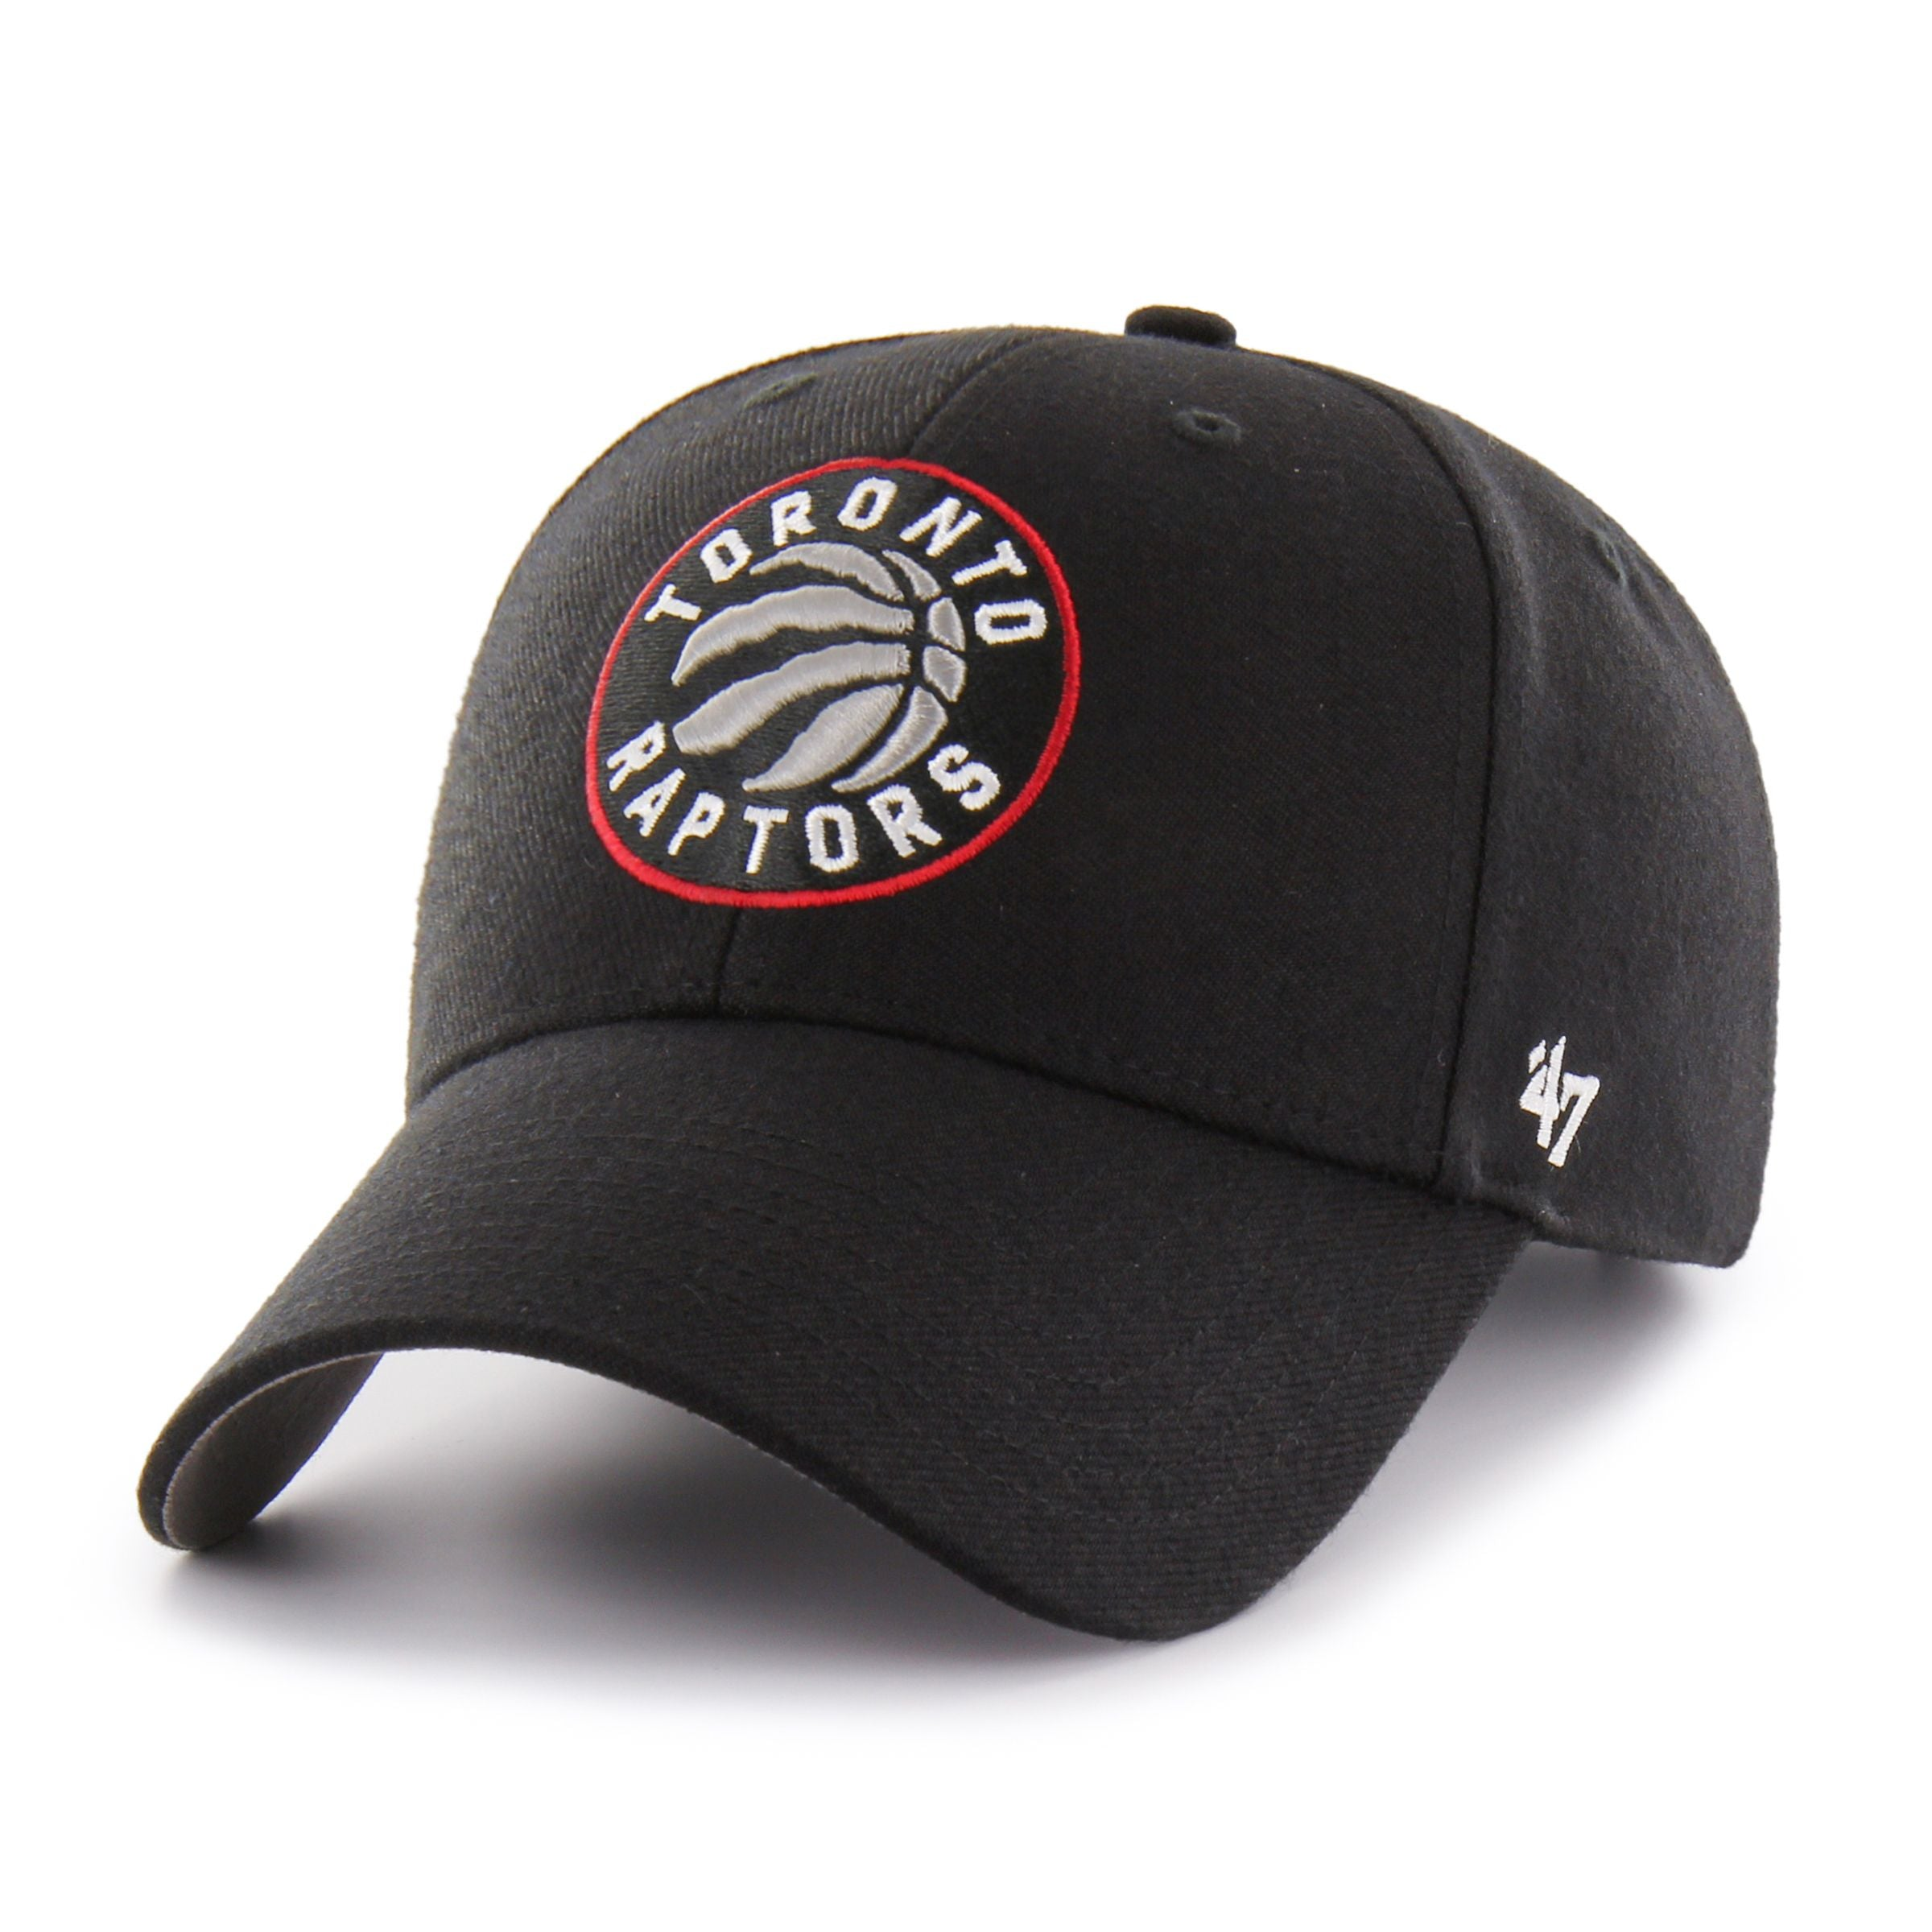 Raptors Black MVP cap